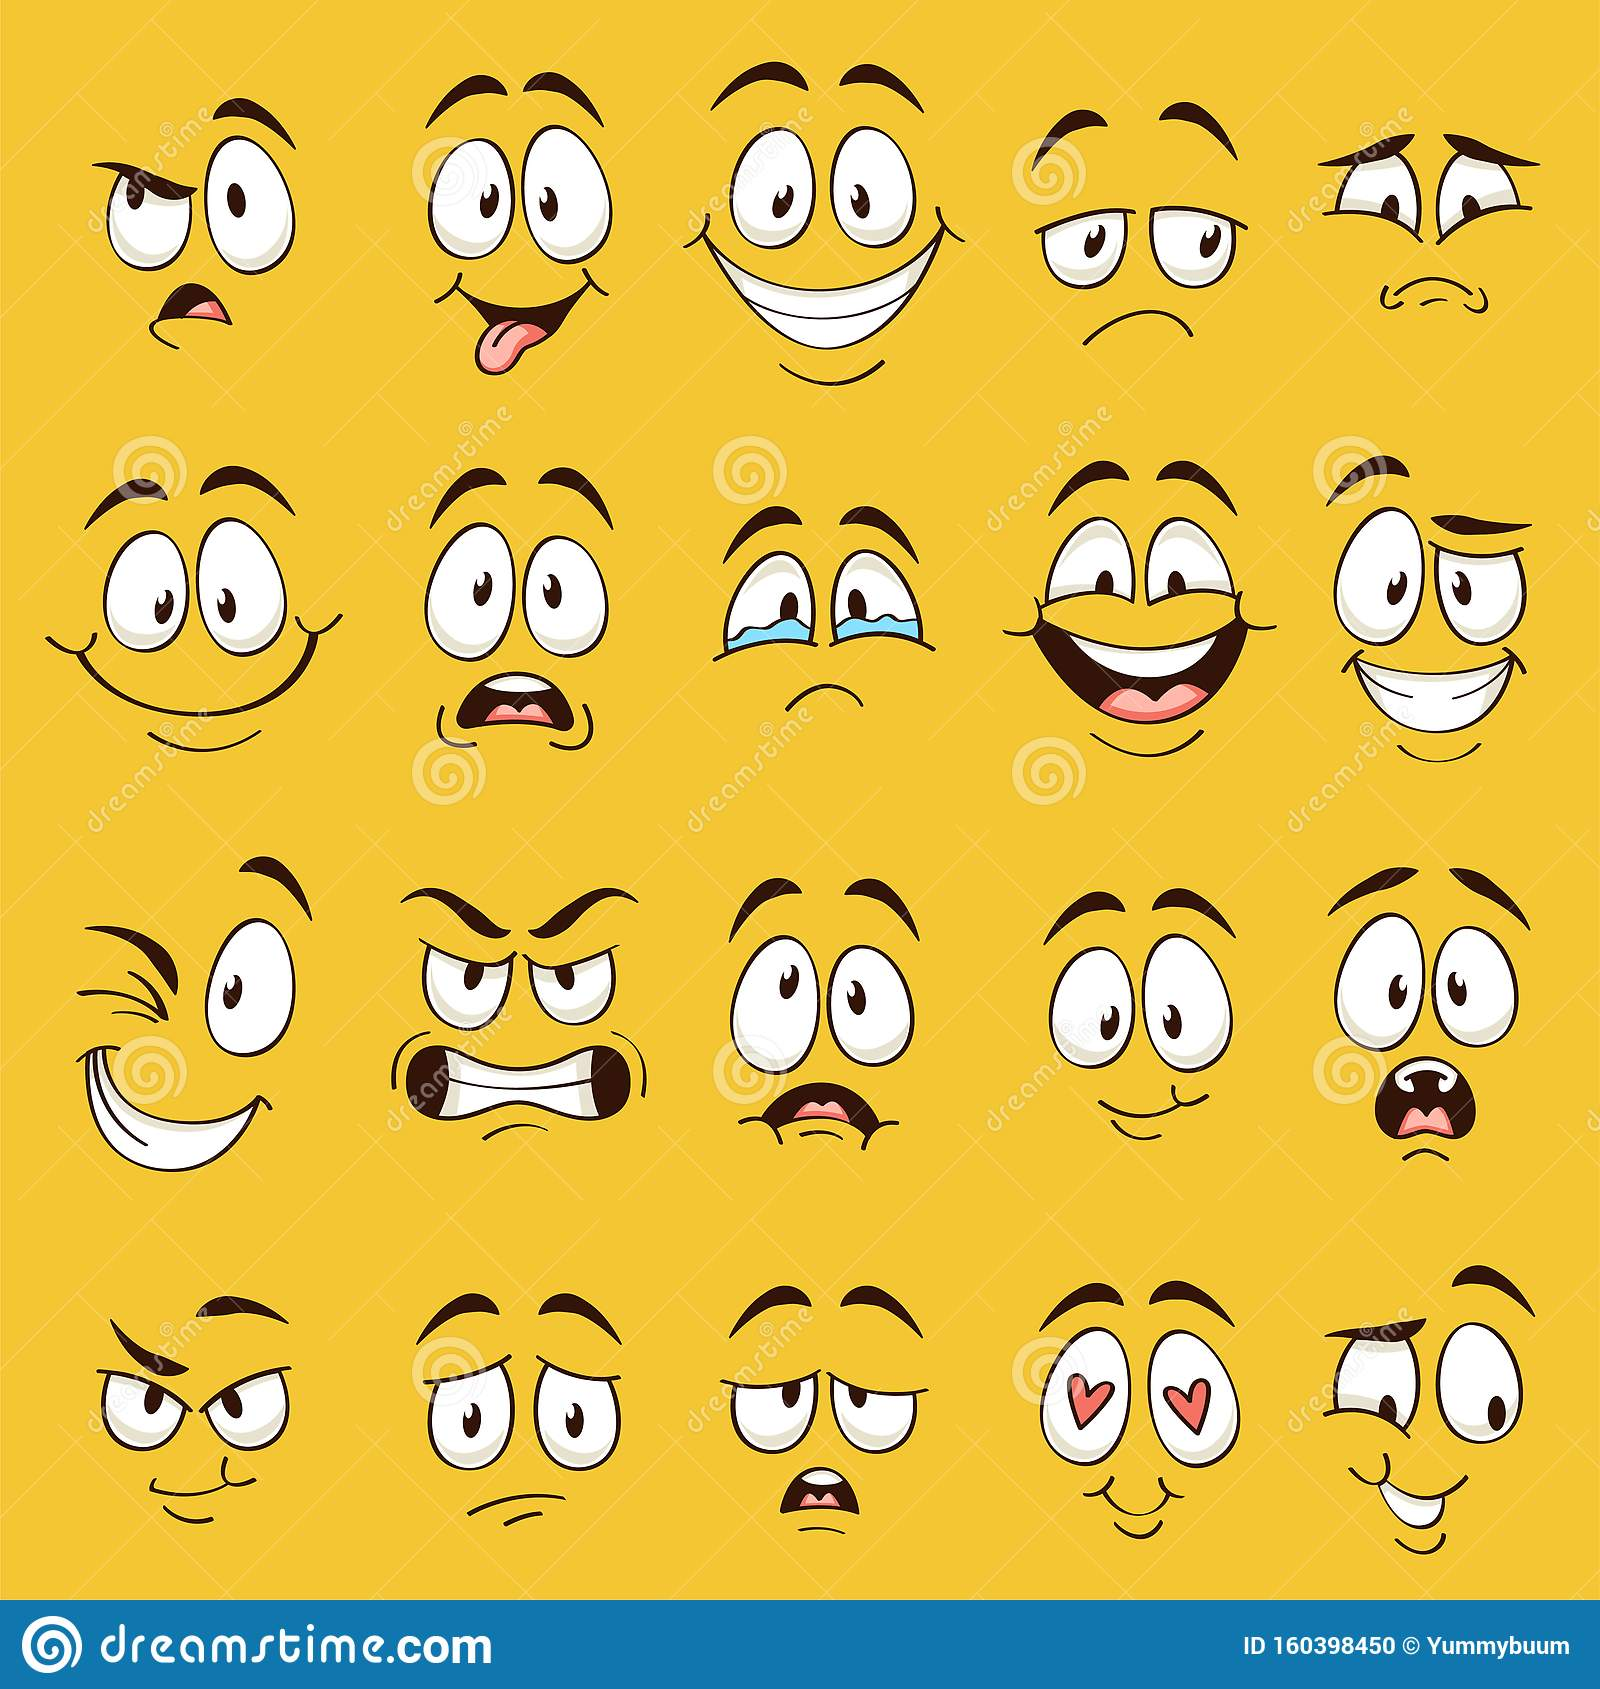 Cartoon Faces Funny Face Expressions Caricature Emotions Cute